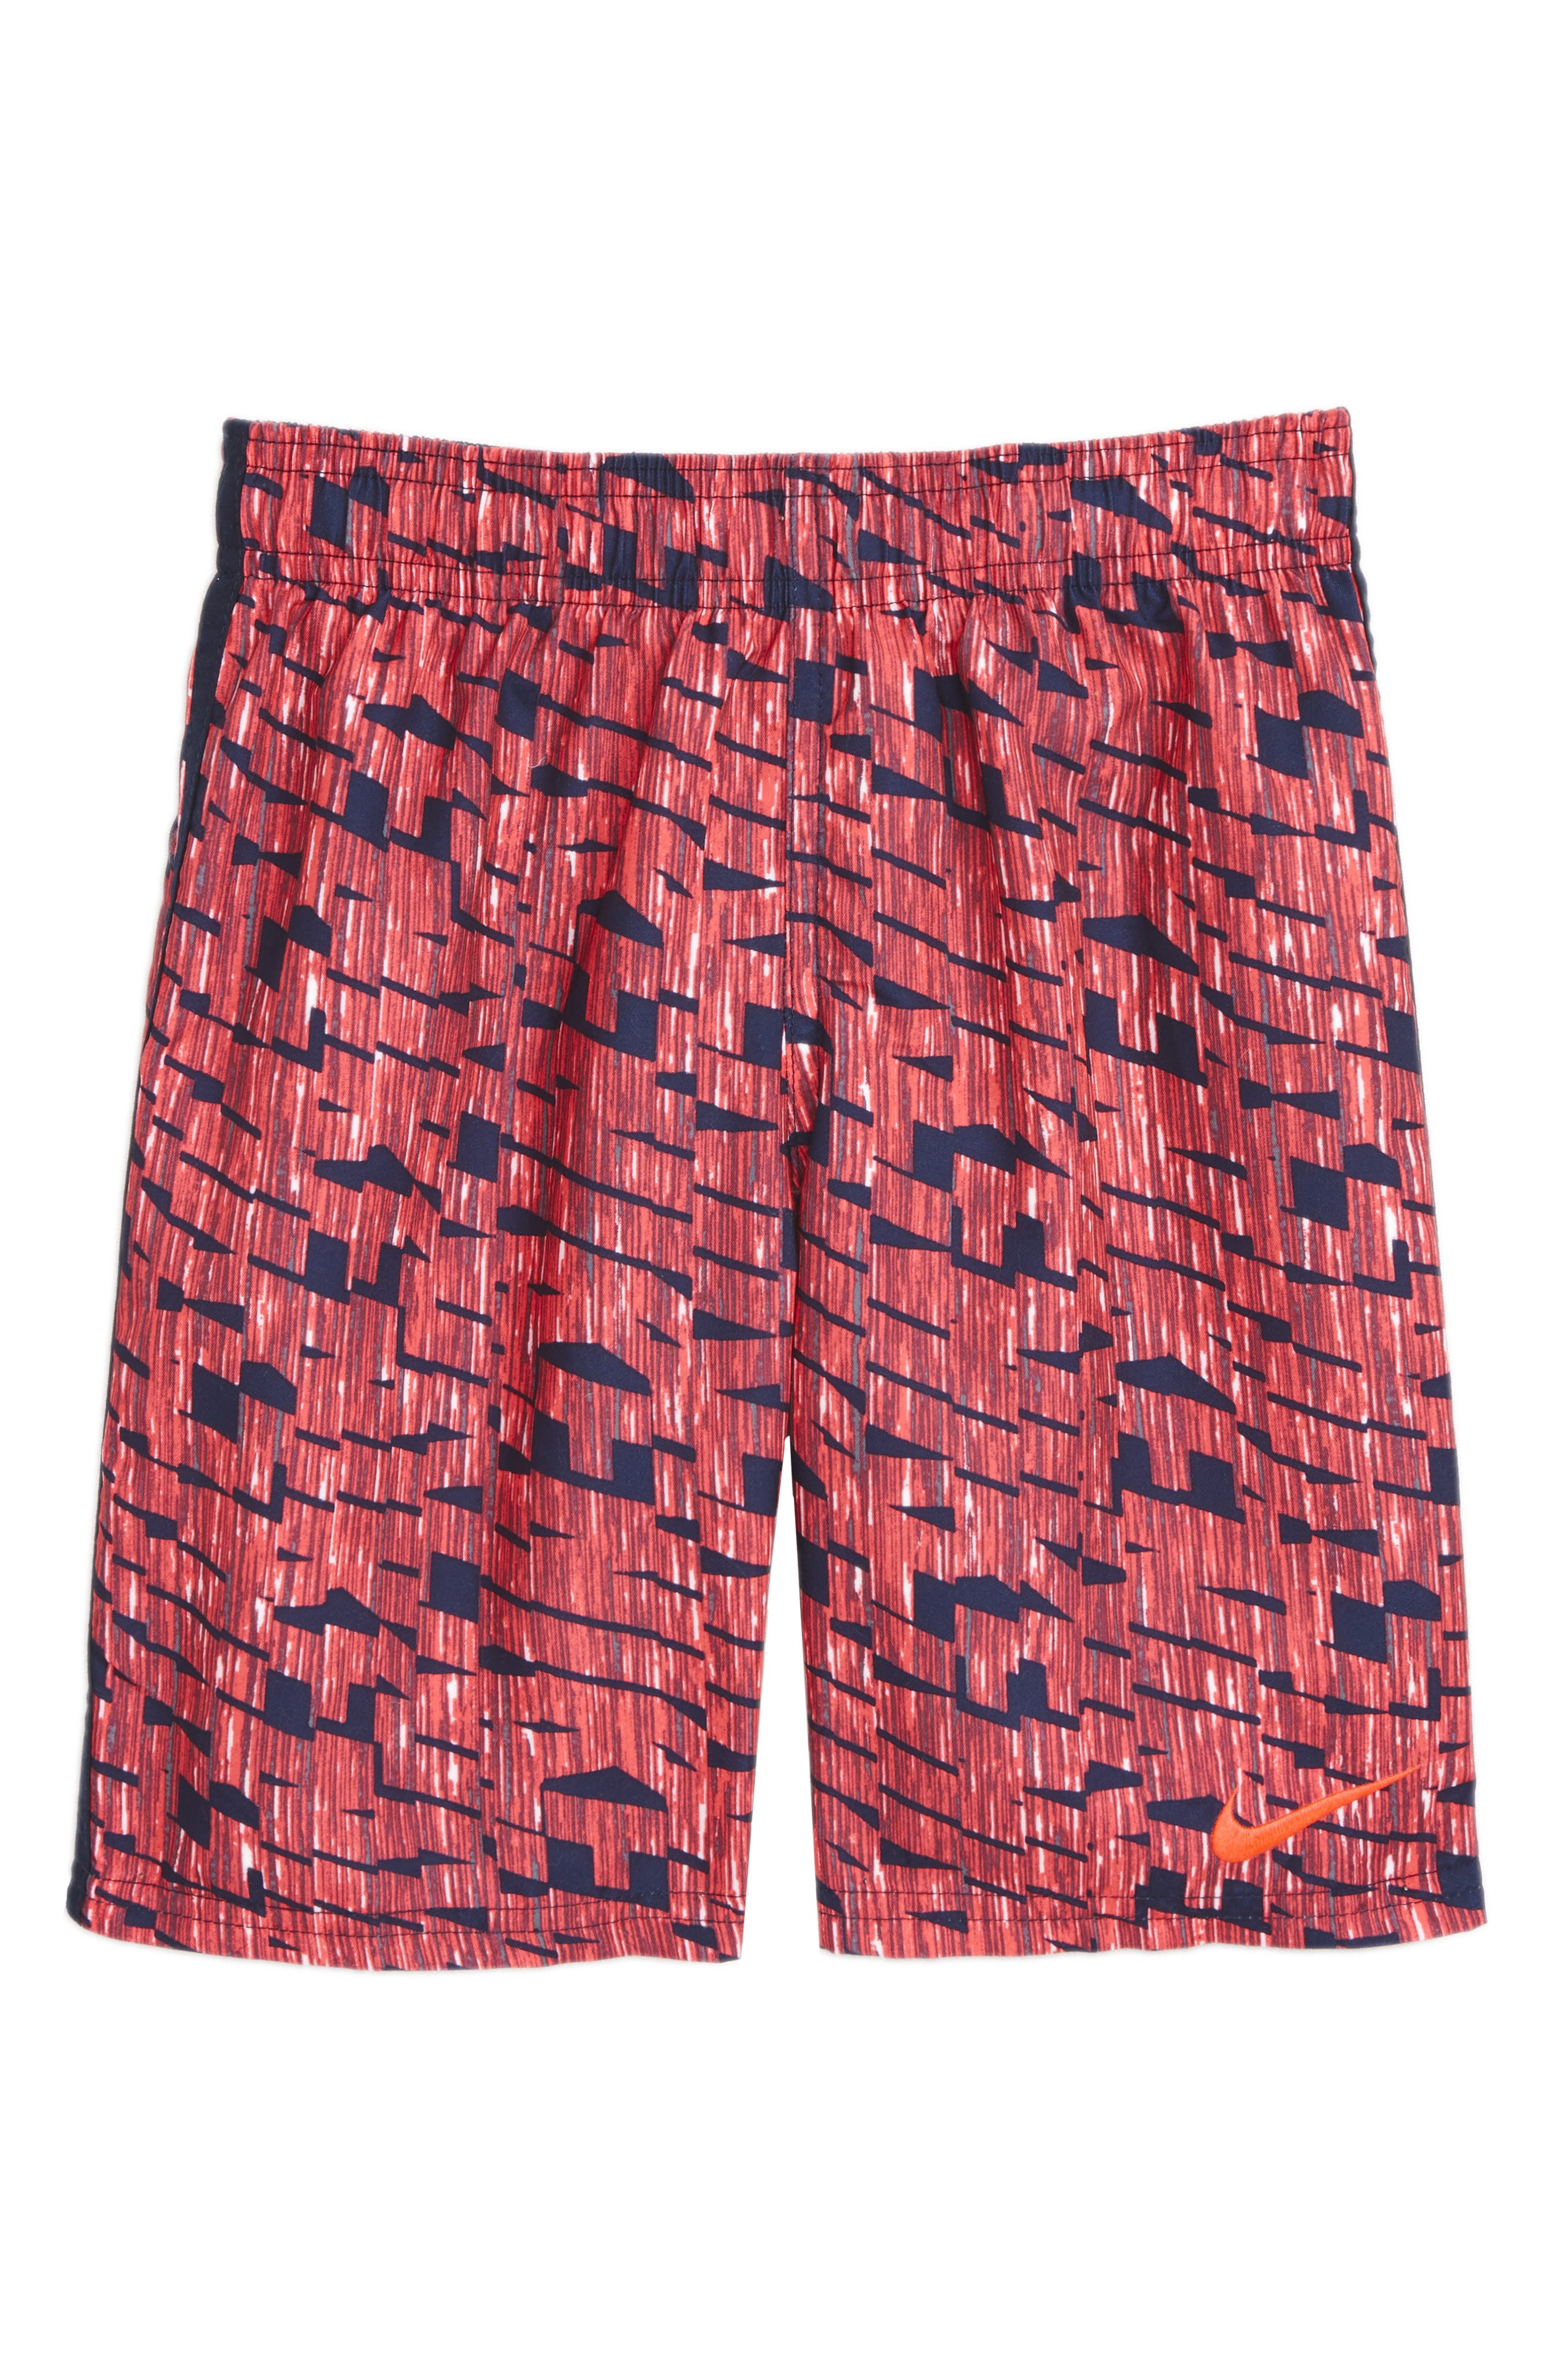 Diverge Board Shorts,                         Main,                         color, Hot Punch